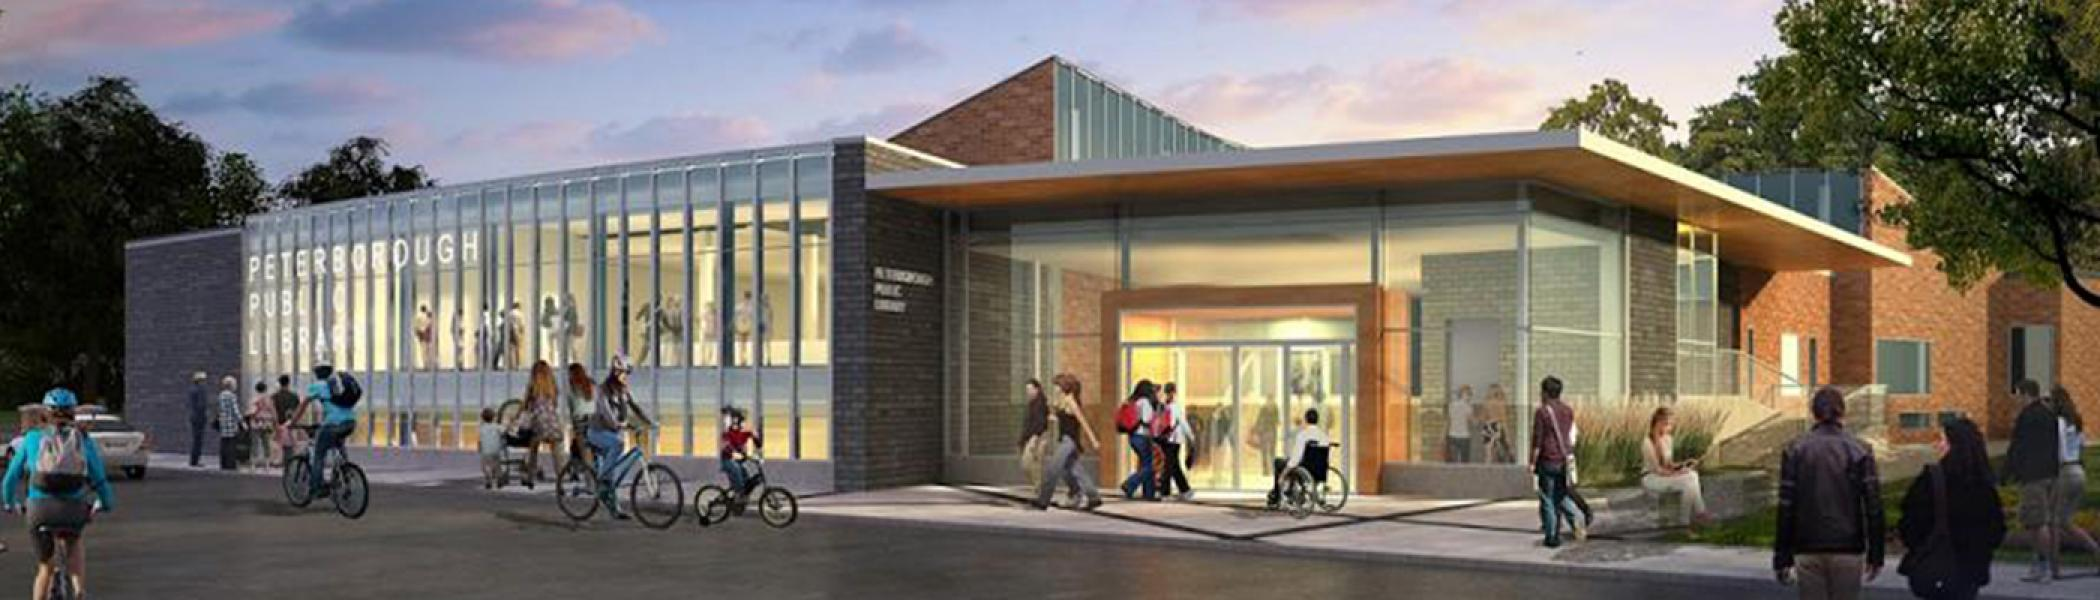 architect drawing of the new PTBO public library